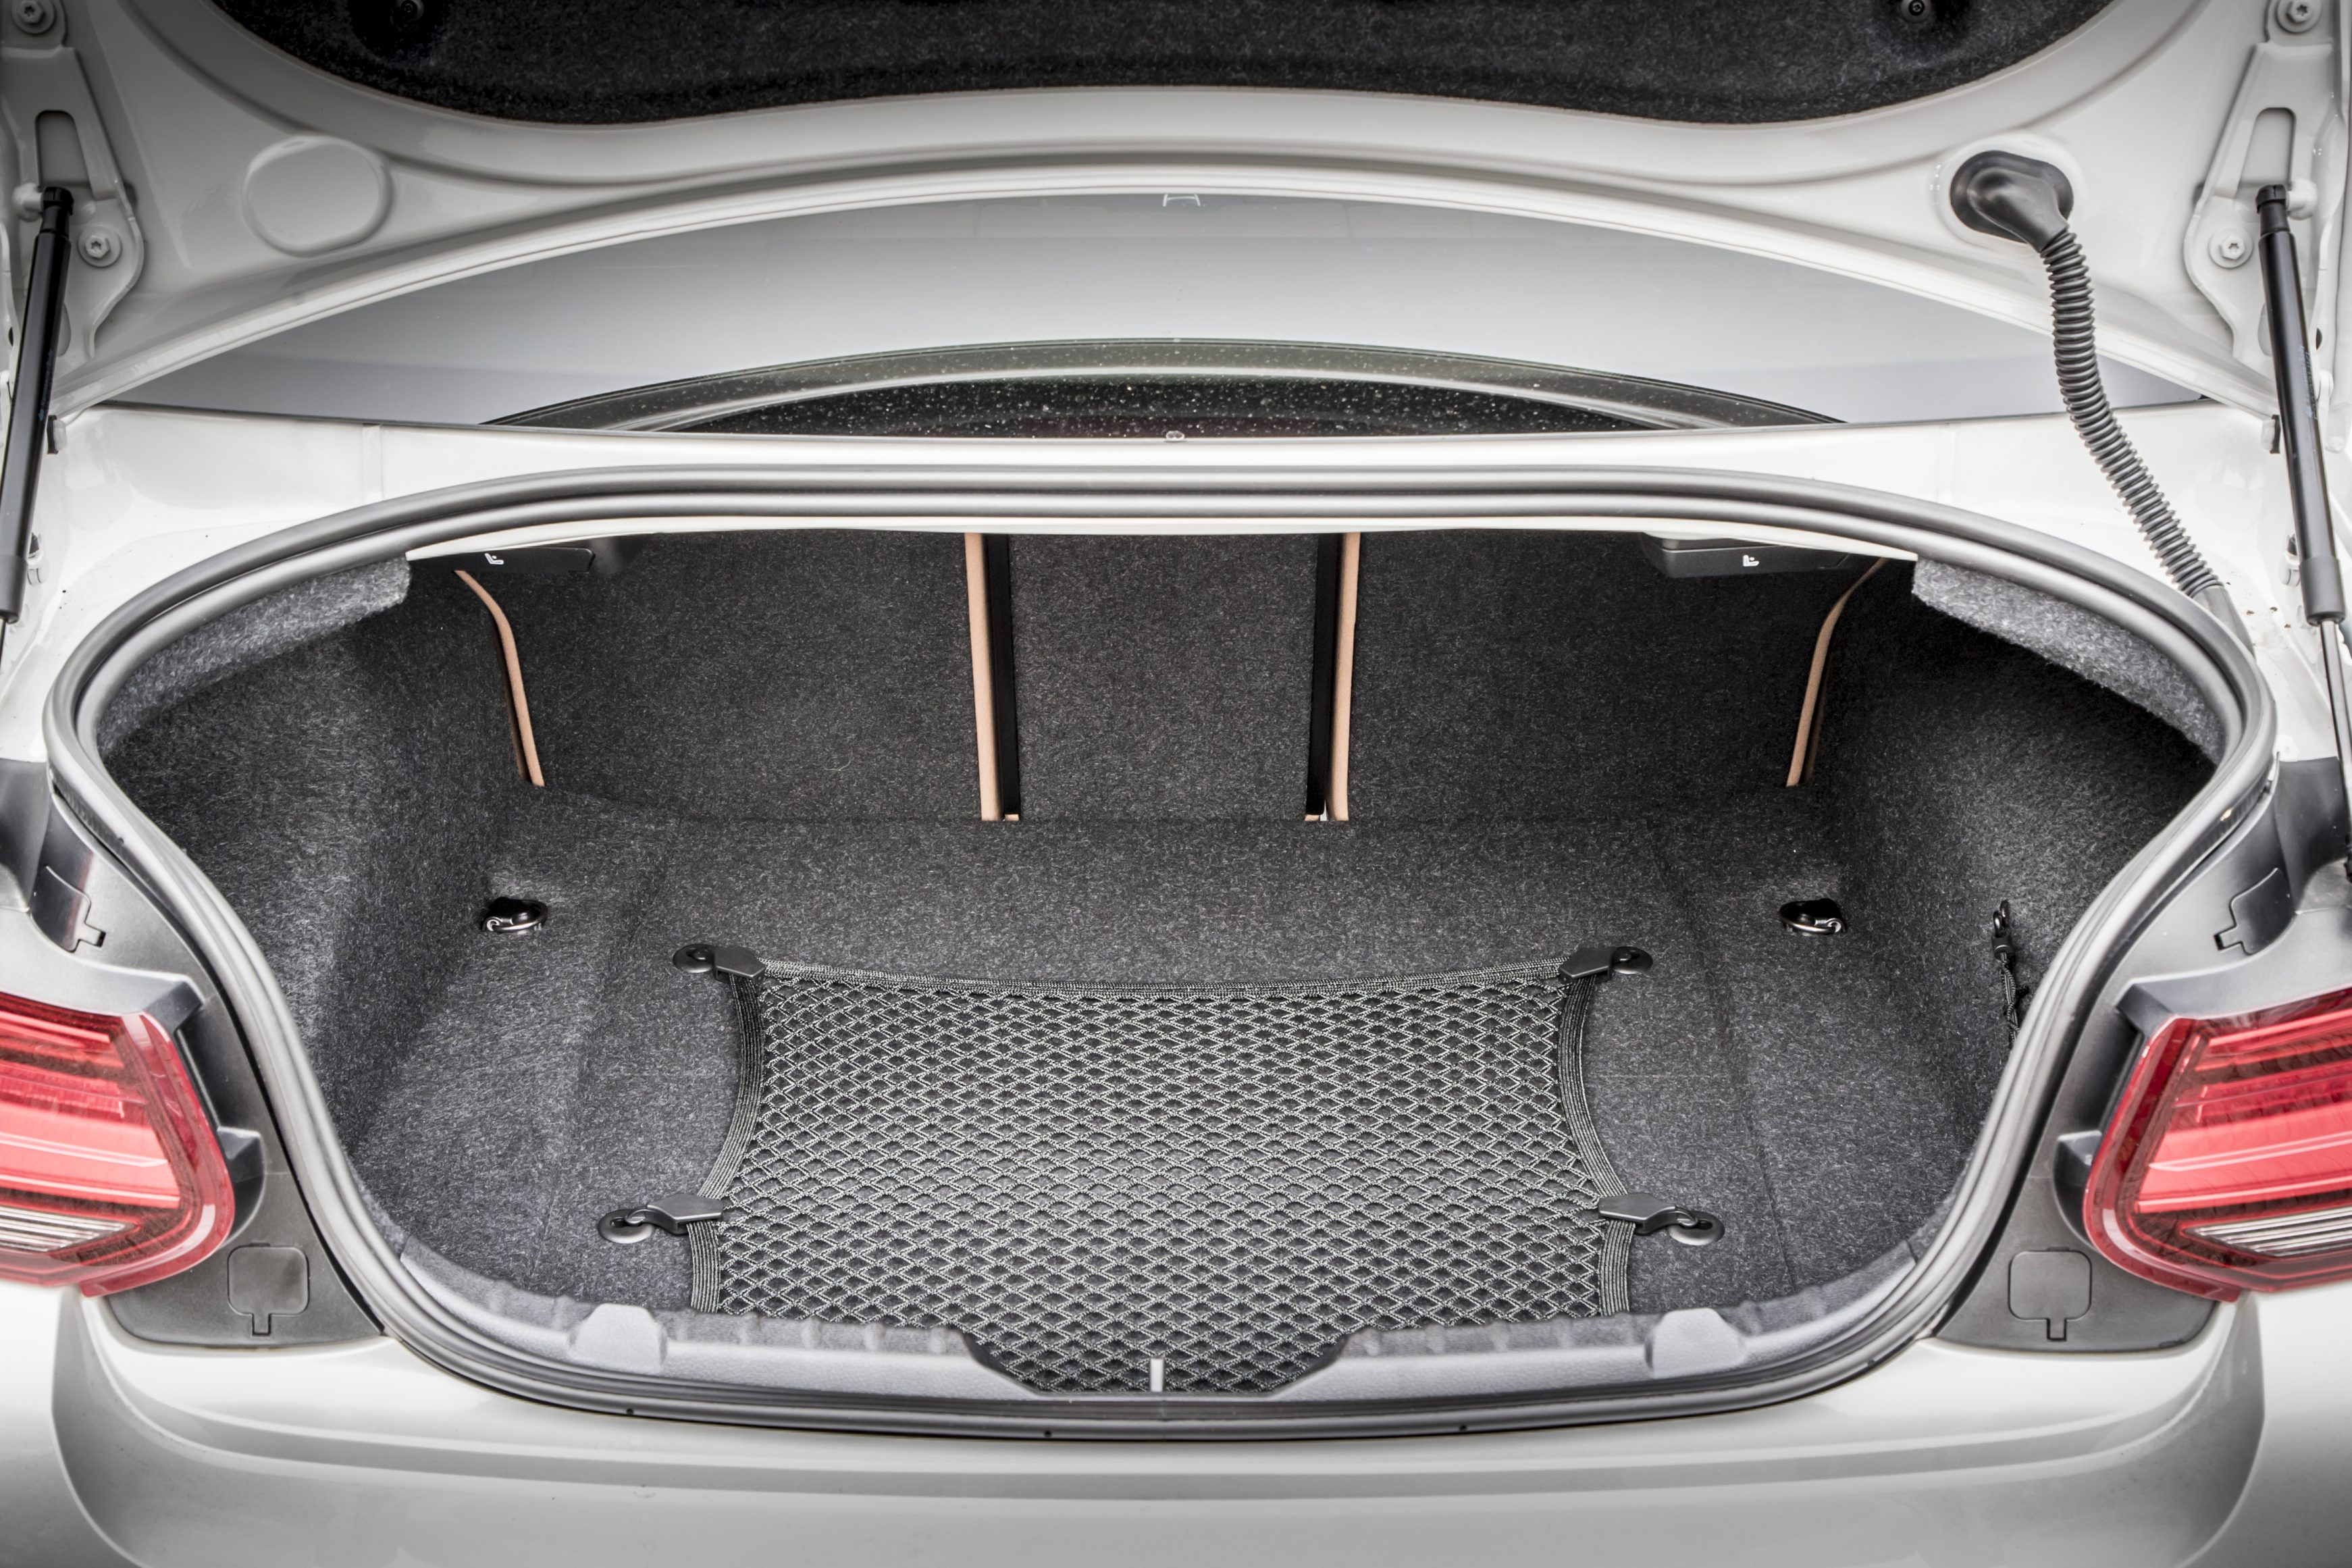 BMW 2 Series boot pictured open